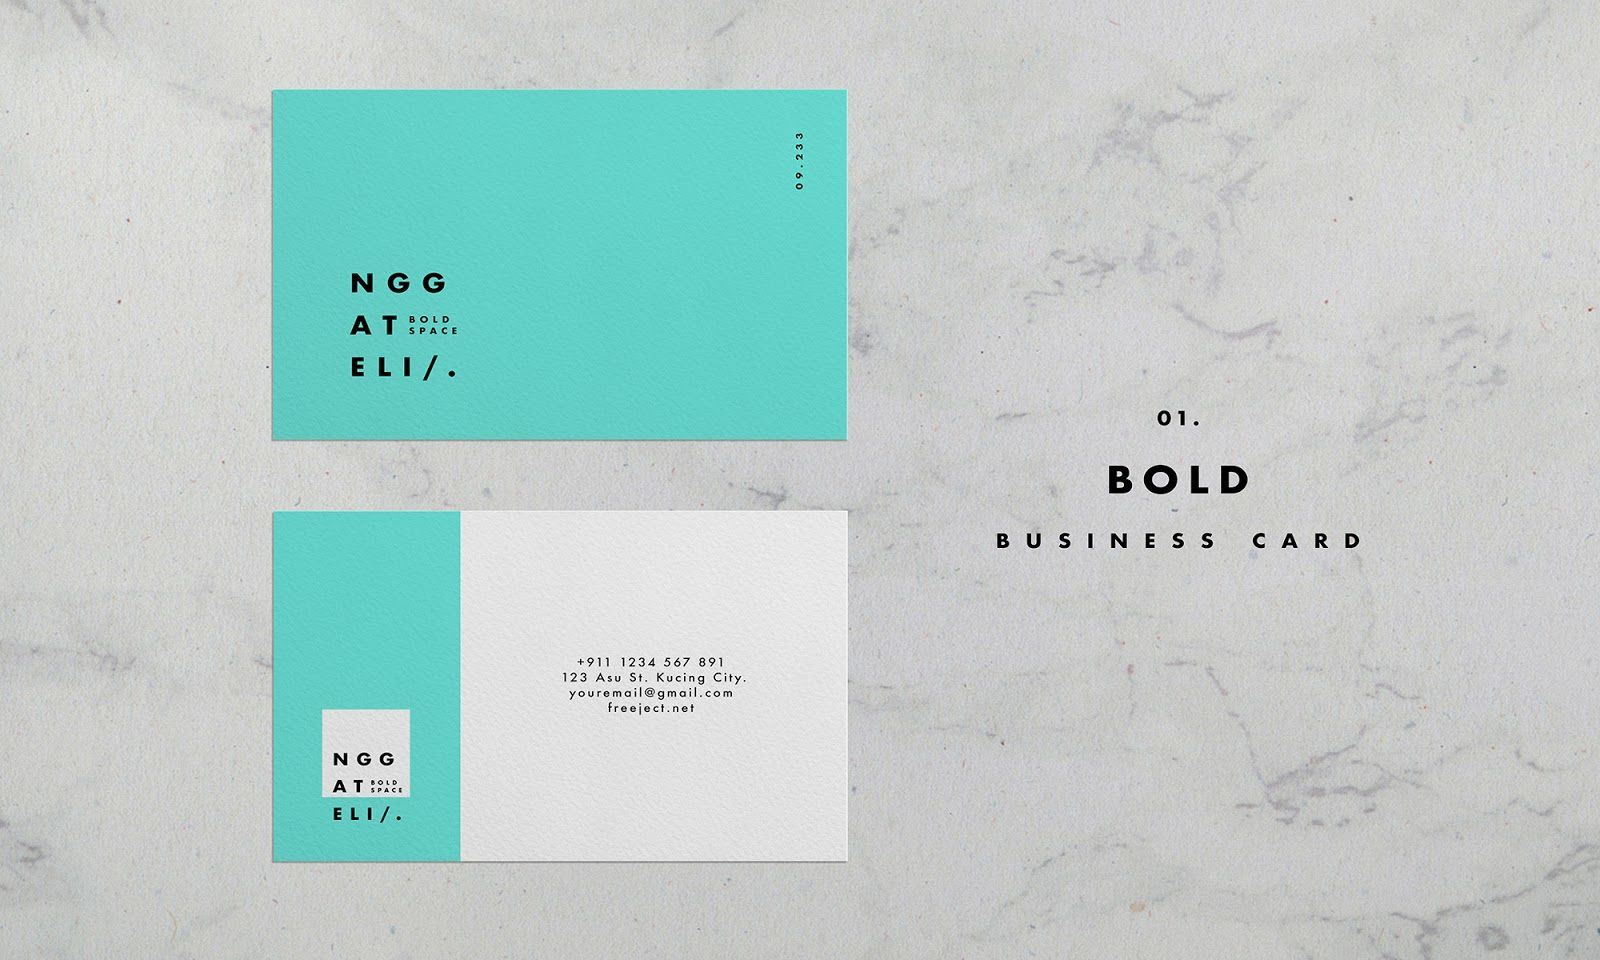 005 Stupendou Simple Visiting Card Design Psd Inspiration  Minimalist Busines Template Free File Download In PhotoshopFull